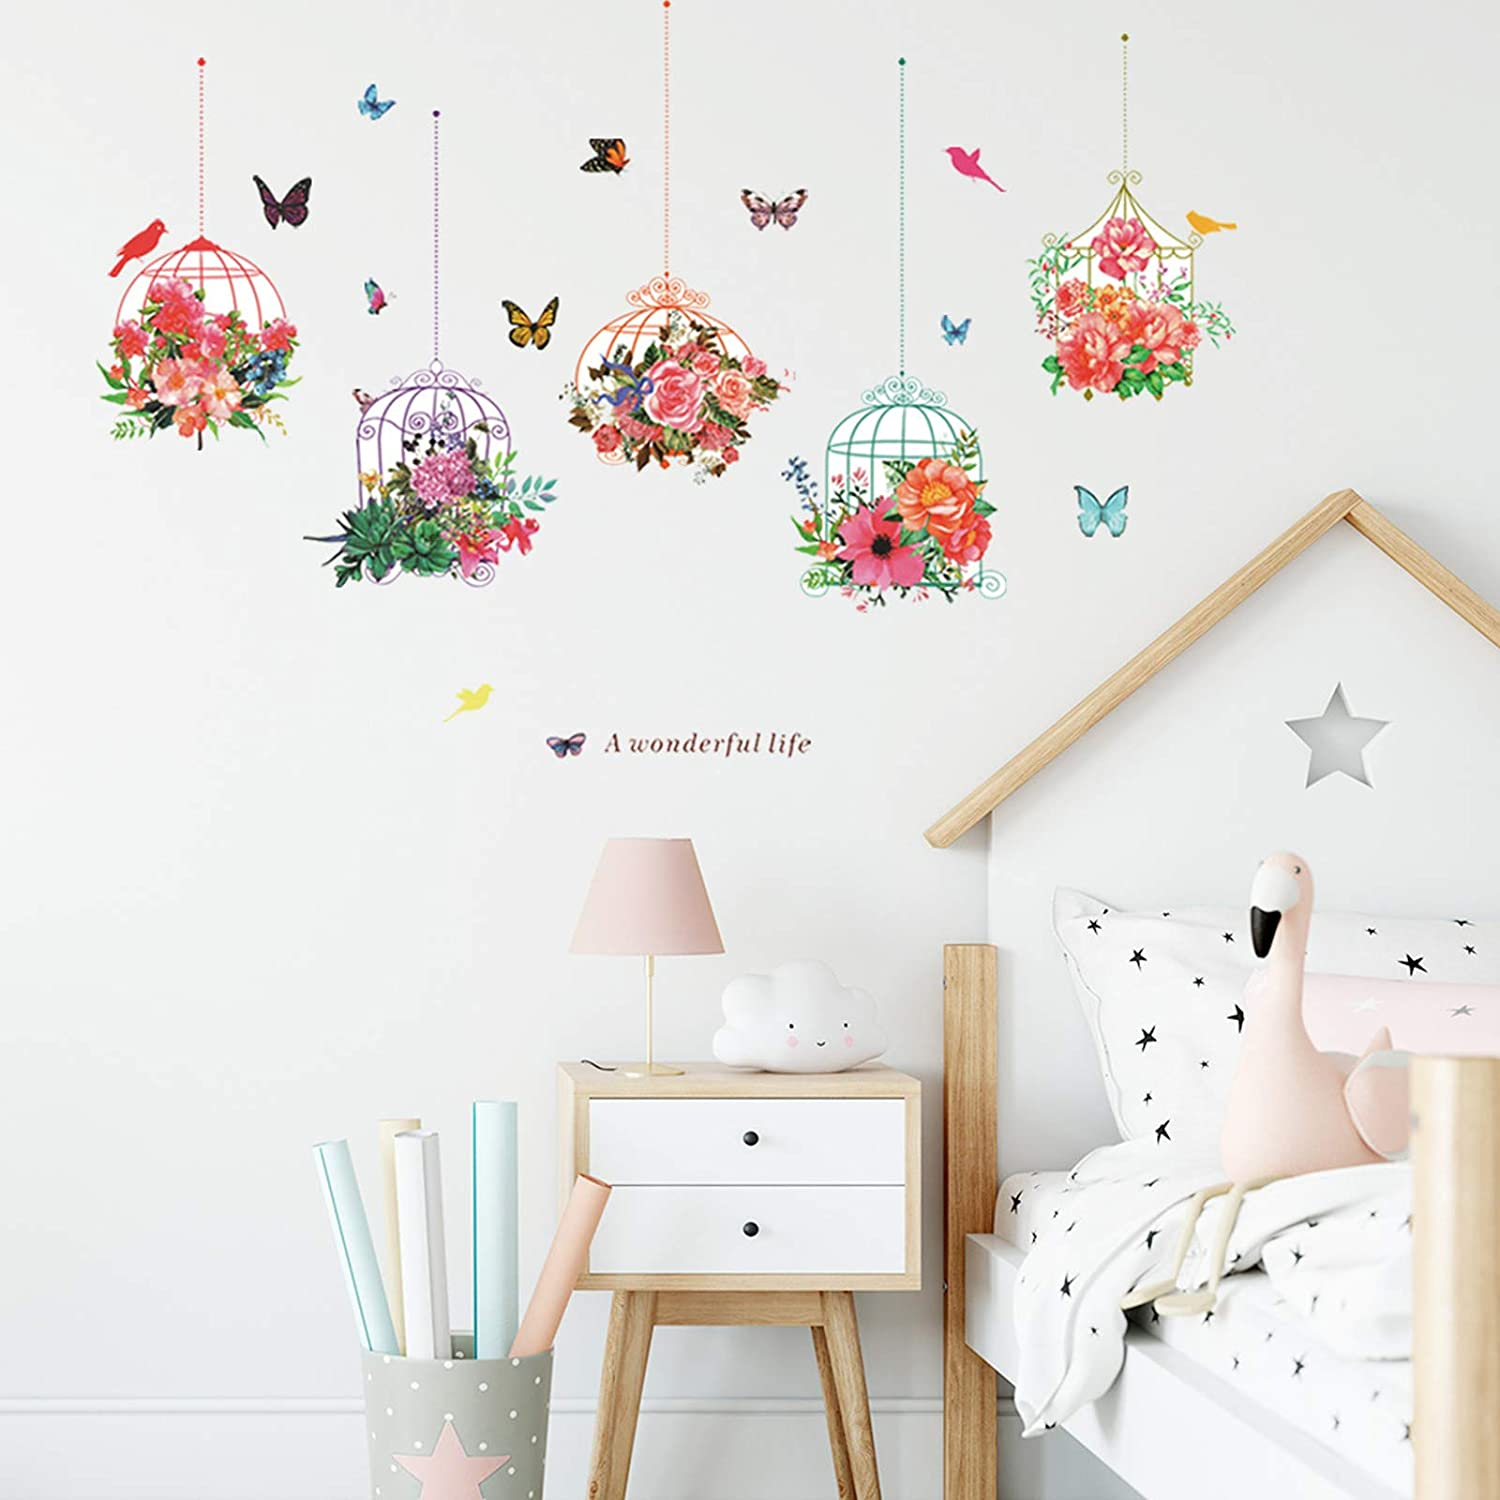 Hanging Birdcage Flower Potted Wall Art Decal Butterfly Flying Birds Green Plants Wall Sticker Spring Wall Art Mural Sticker for Kids Room Bedroom Nursery Decoration